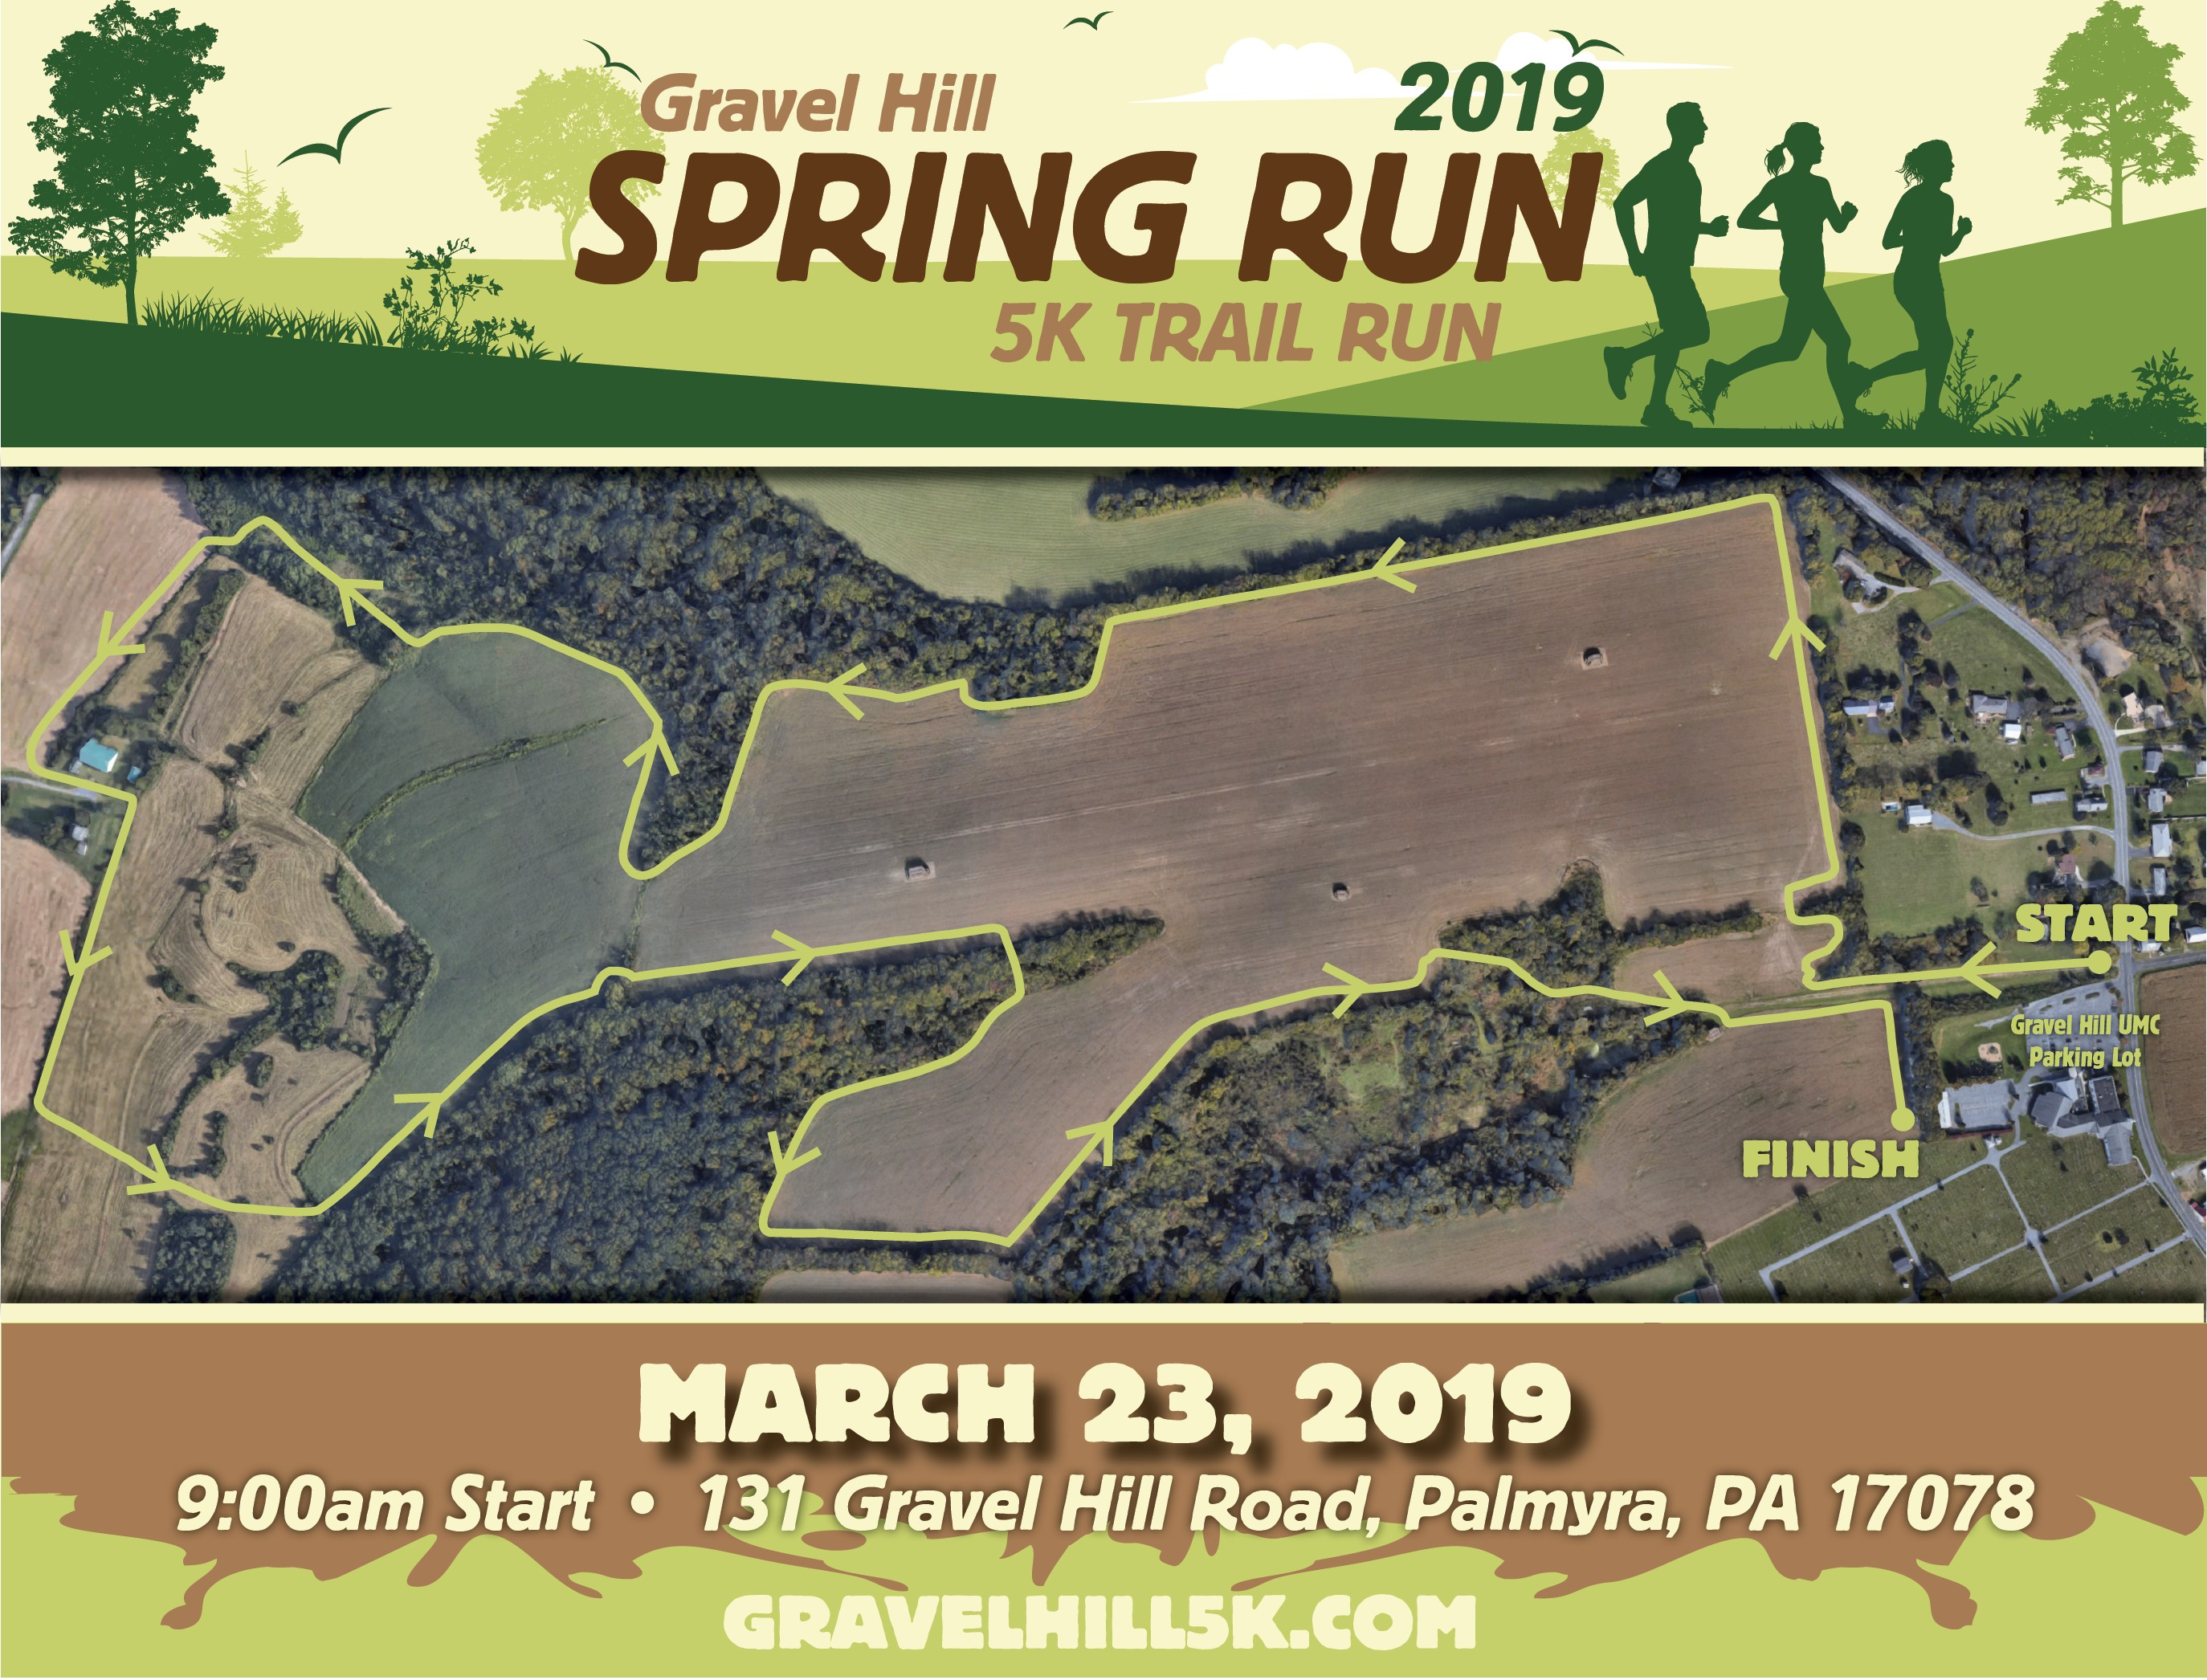 March 2019 Calendar Landscape Más Reciente Gravel Hill Spring Run 5k Ghumc Of March 2019 Calendar Landscape Recientes 2018 Hubble Space Telescope Advent Calendar the atlantic